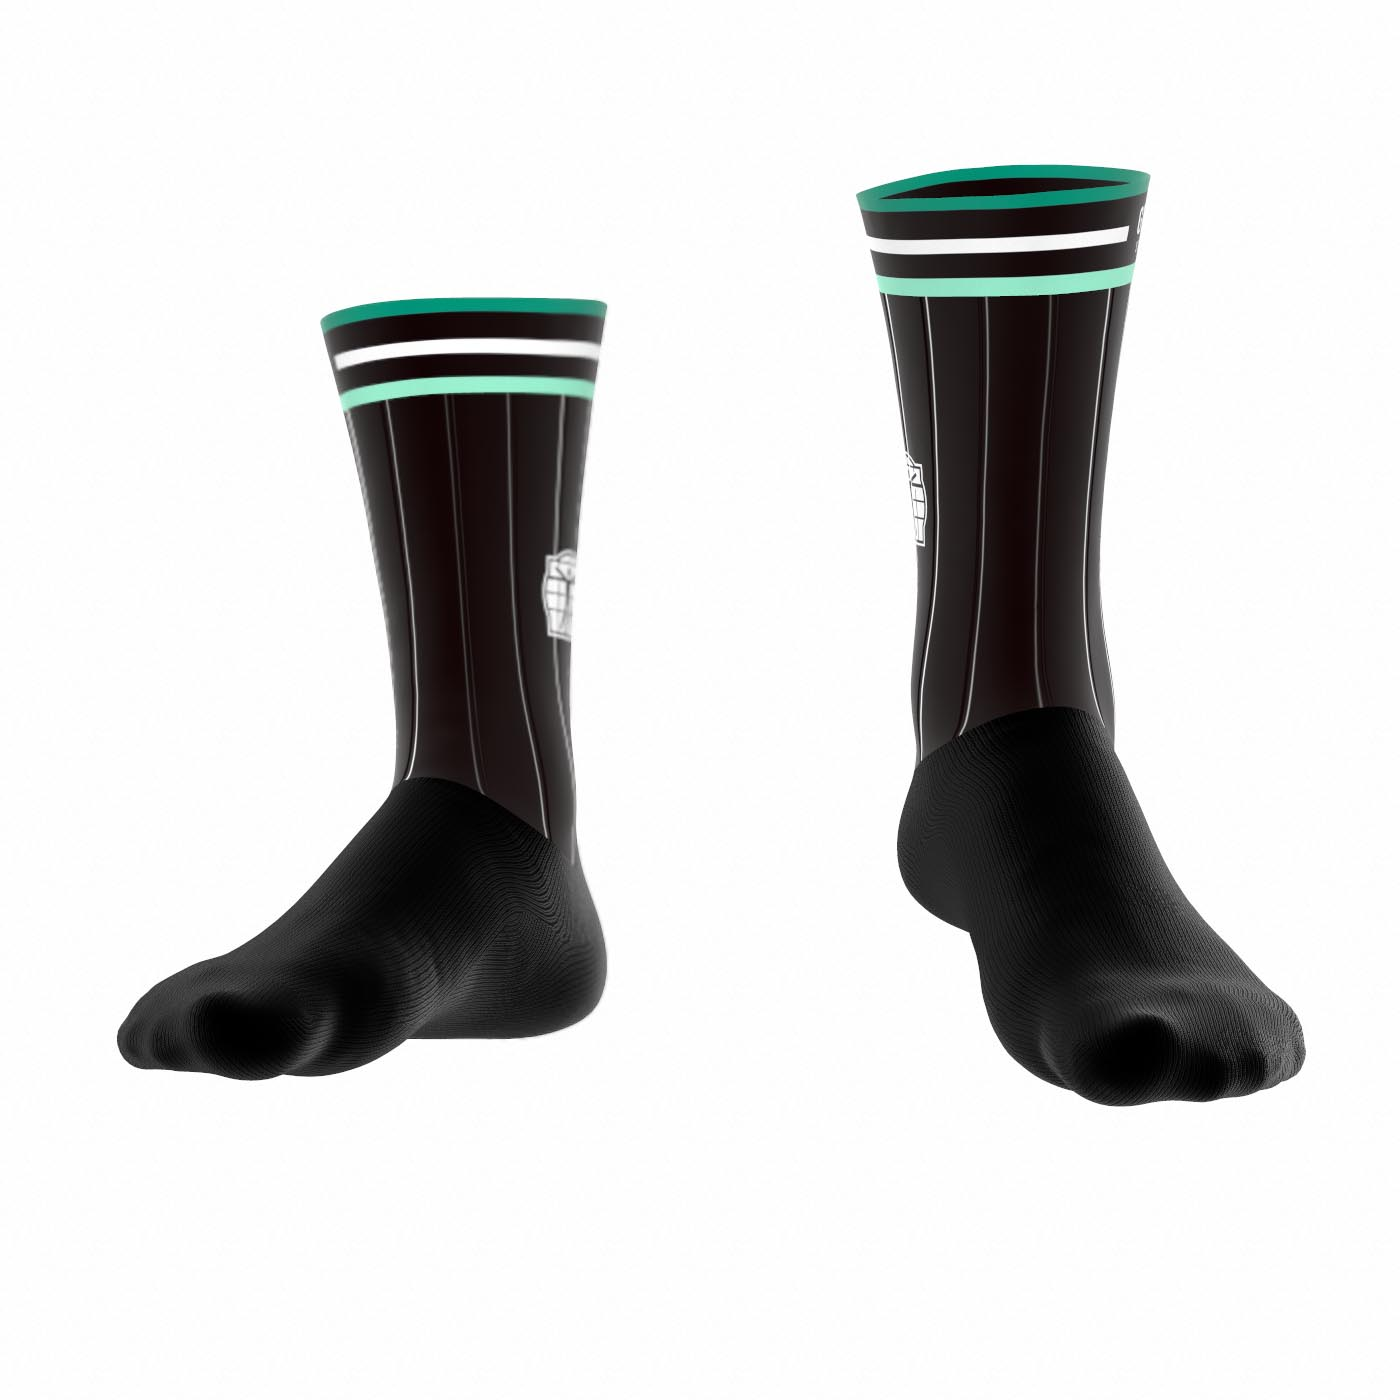 prj20-010123_acc-speedsocks_front